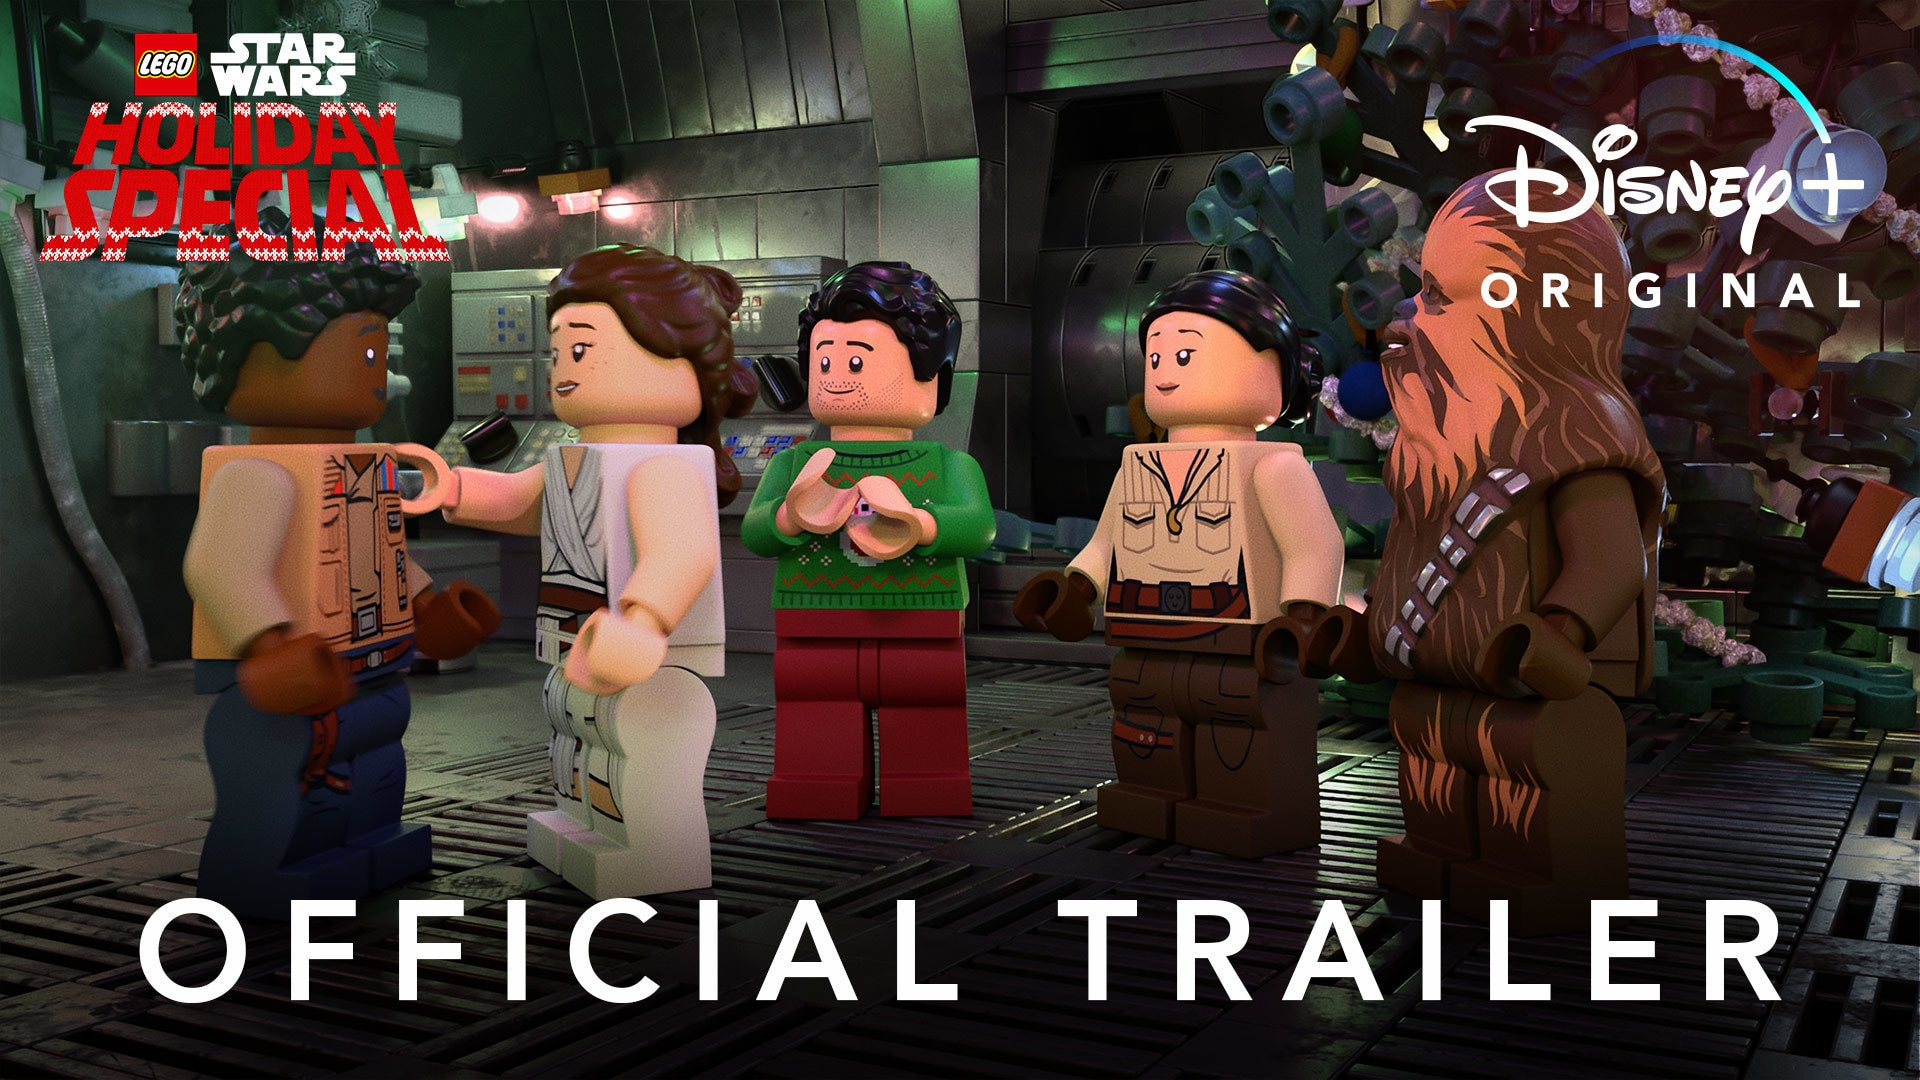 Official Trailer - LEGO Star Wars Holiday Special